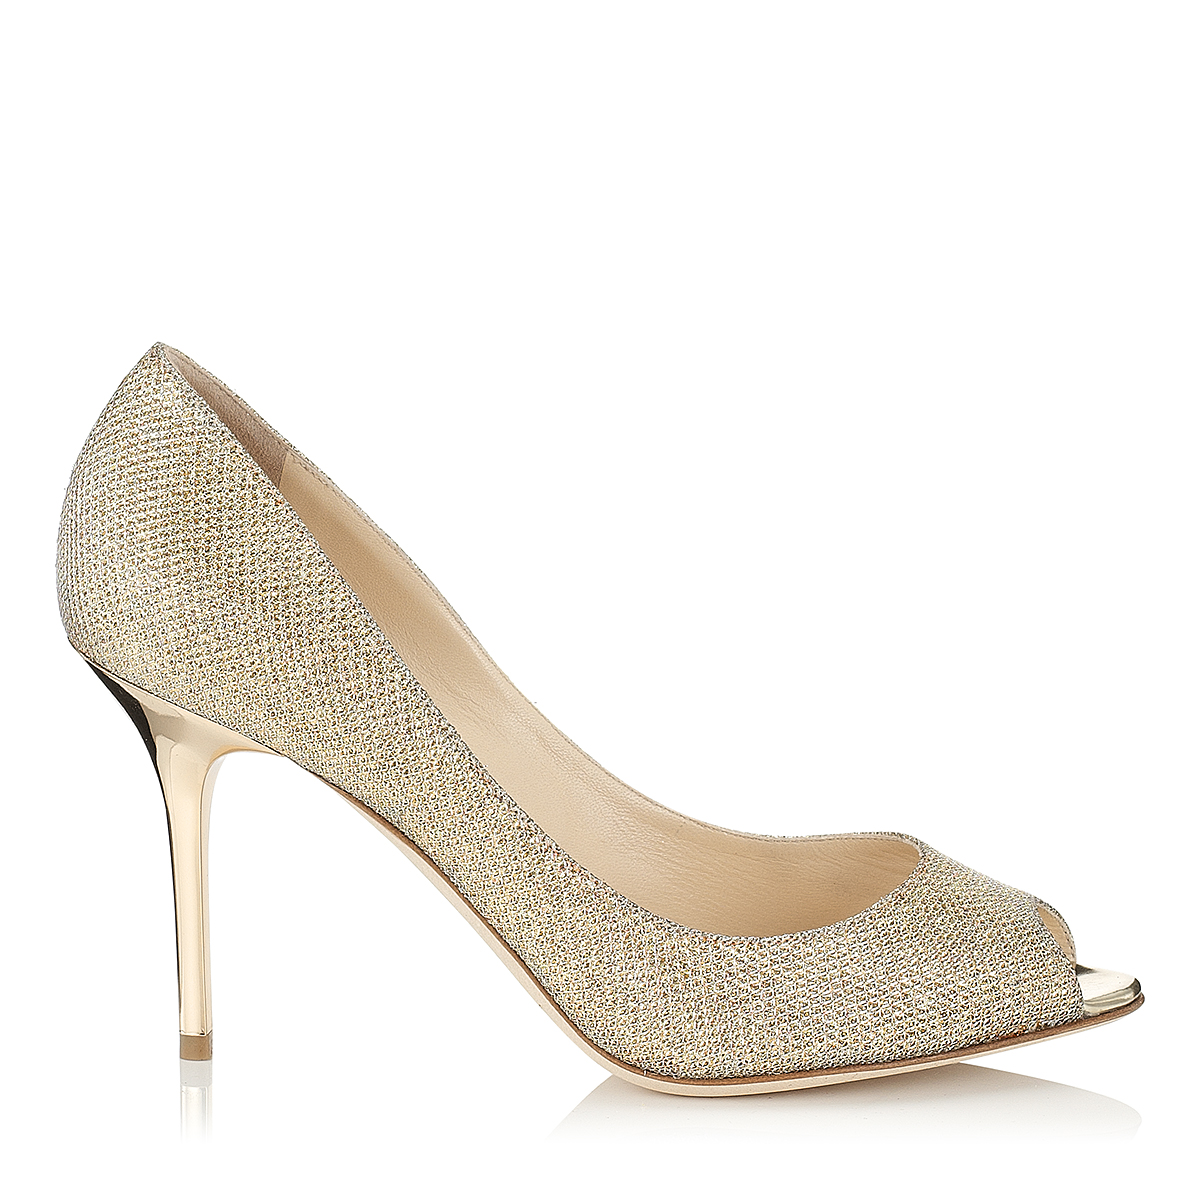 EVELYN Gold Lamé Glitter Peep Toe Pumps by Jimmy Choo